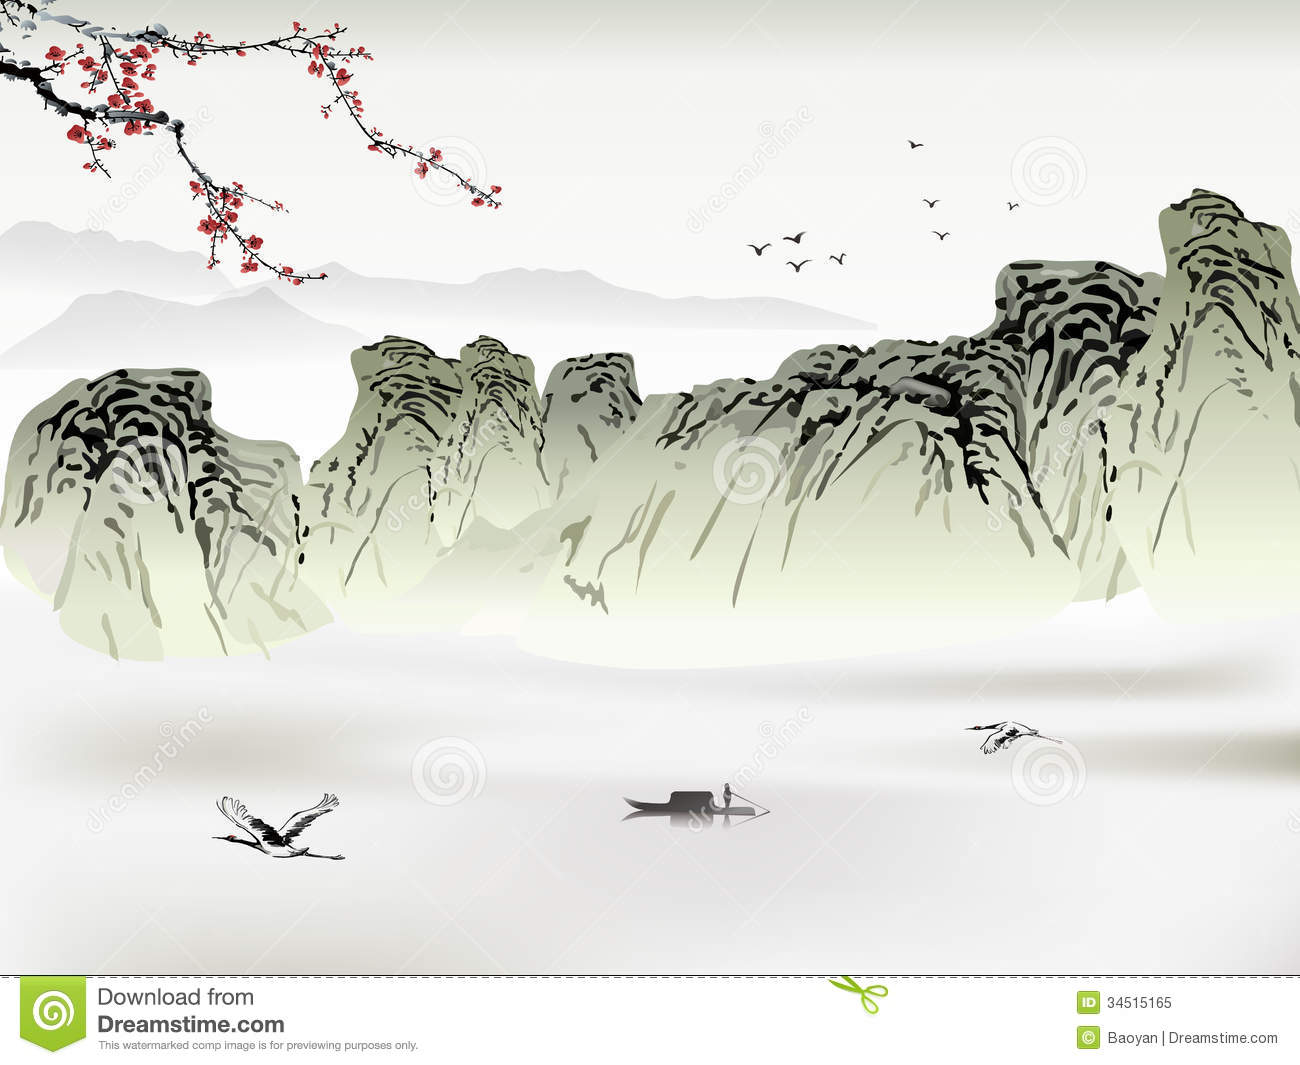 28e835fc0 Chinese painting stock vector. Illustration of background - 34515165